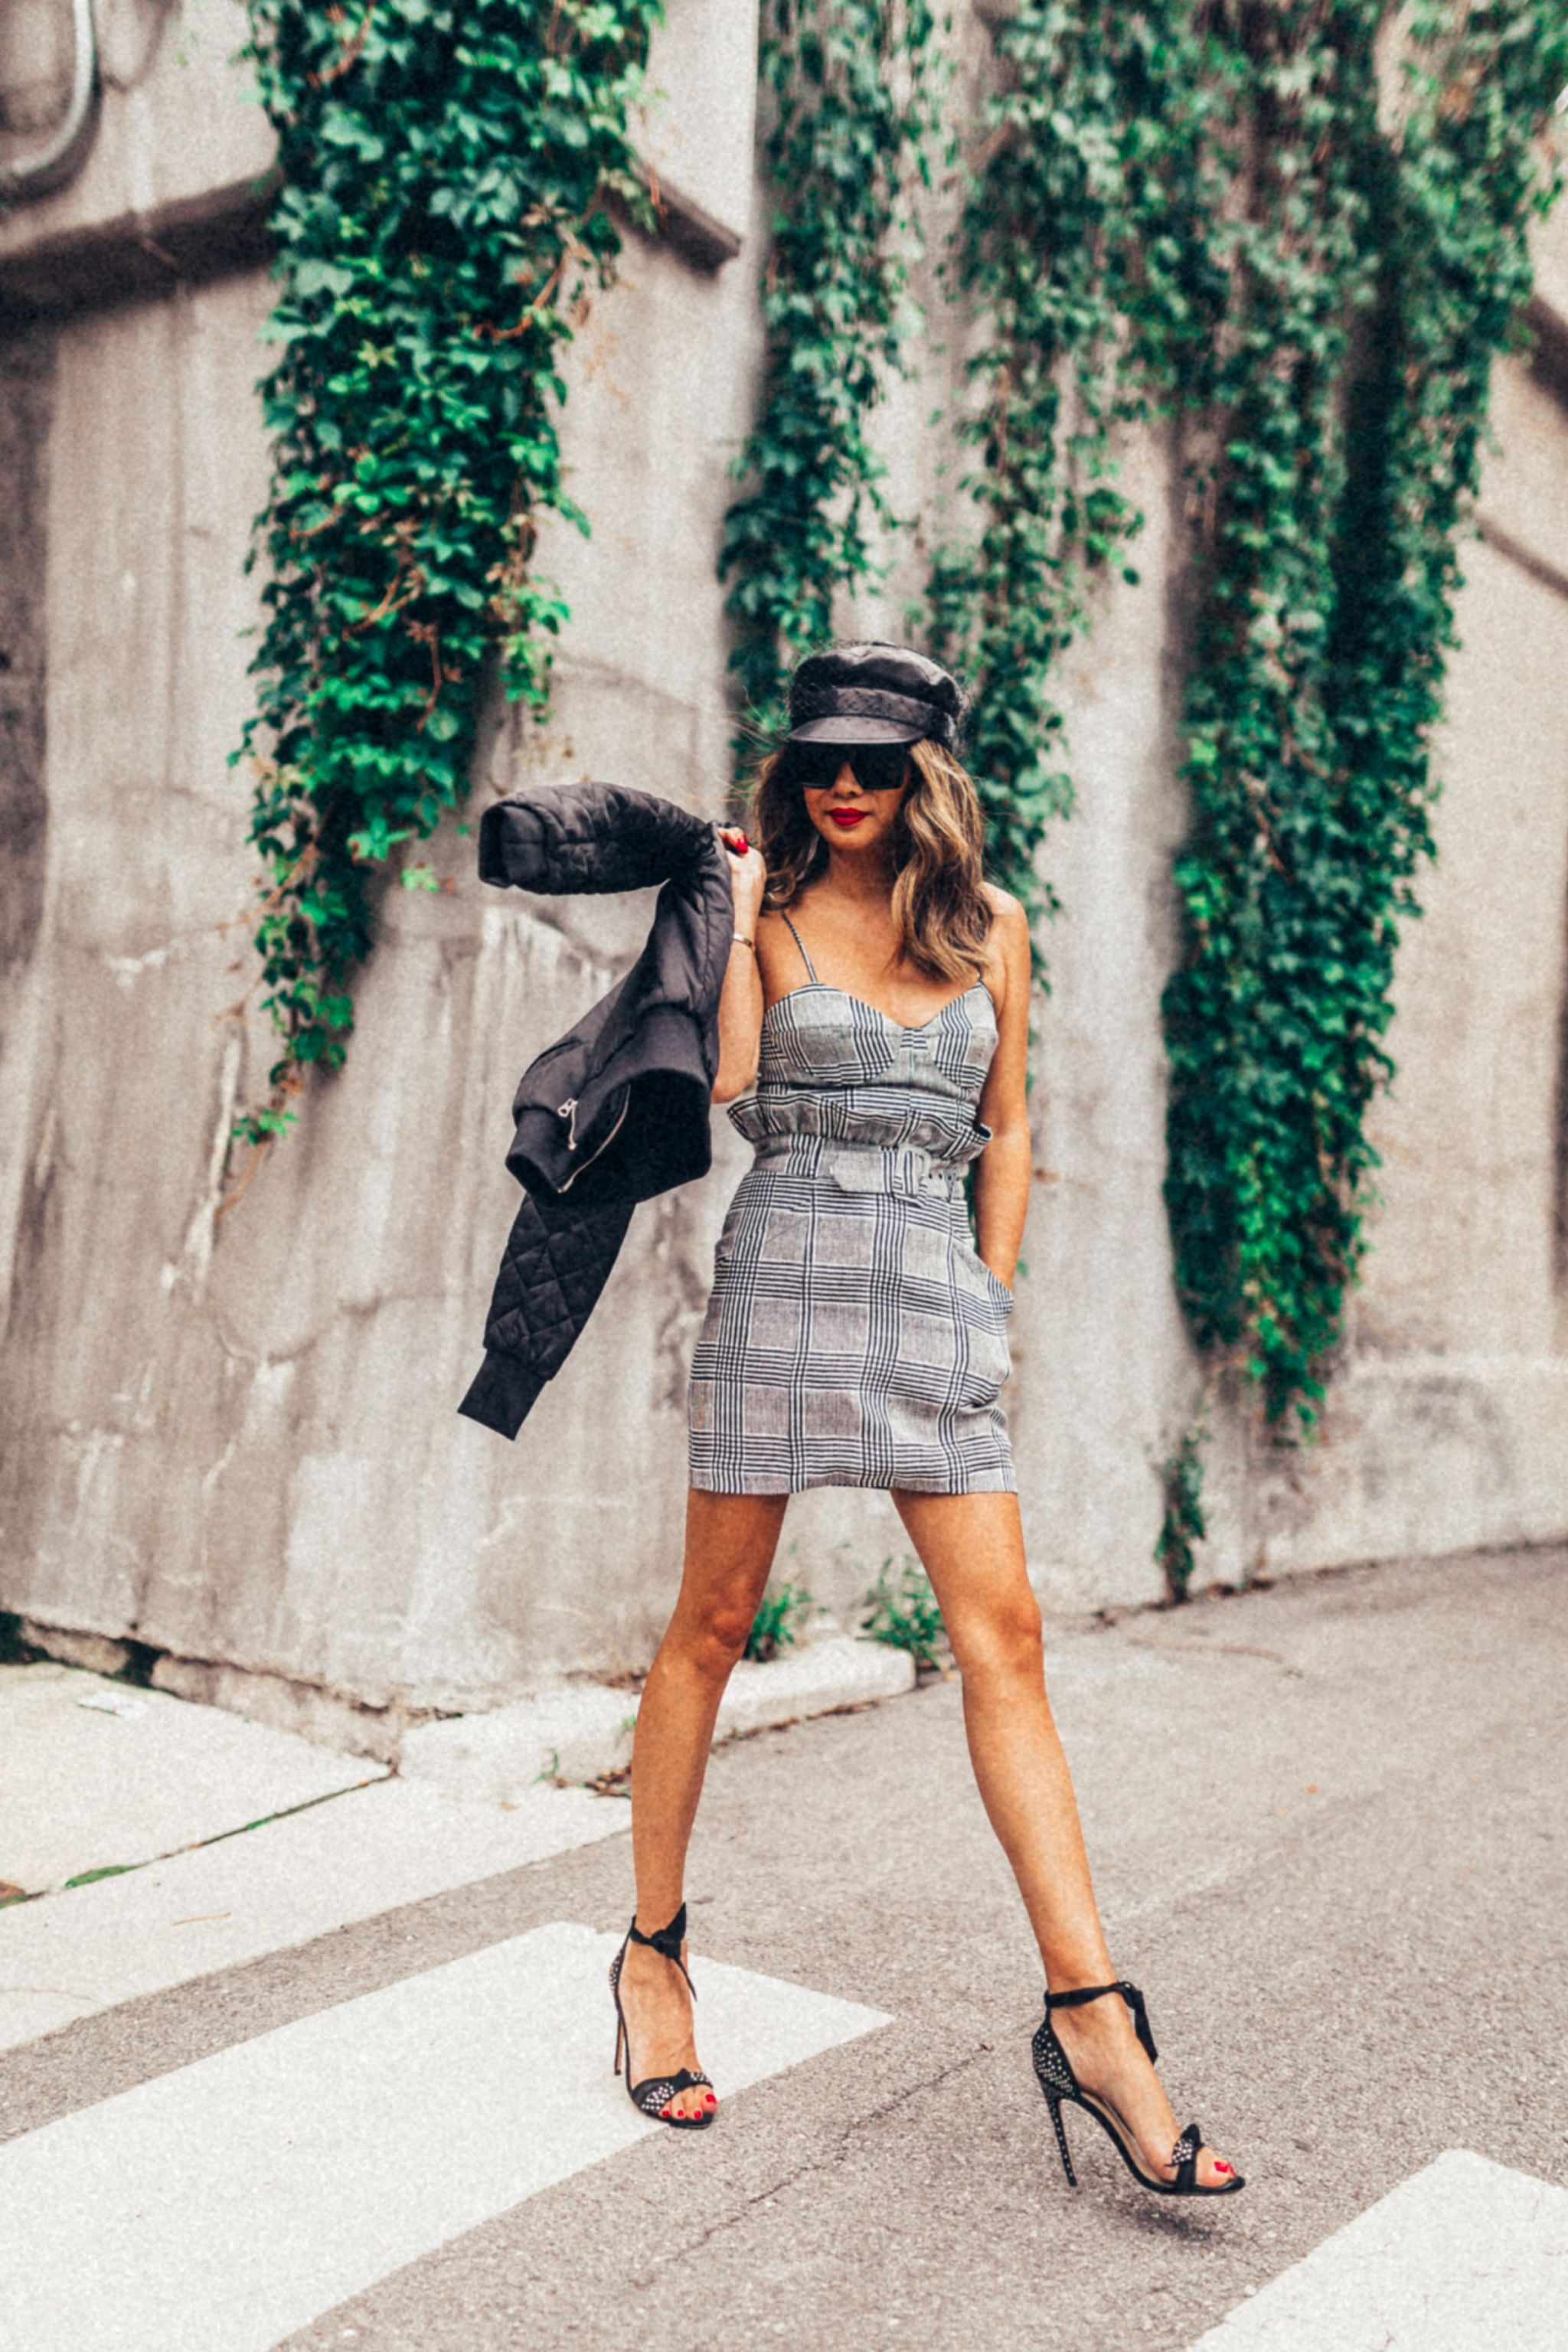 Jennifer Worman, Chicago Style Blogger, Chicago Lifestyle Blogger, Women Supporting Women, Lepa Boutique, Fleur du Mal skirt, Fleur du mal check, Dior Leather Hat with Veil, Veil Leather Hat, 10 ways women should do to support each other